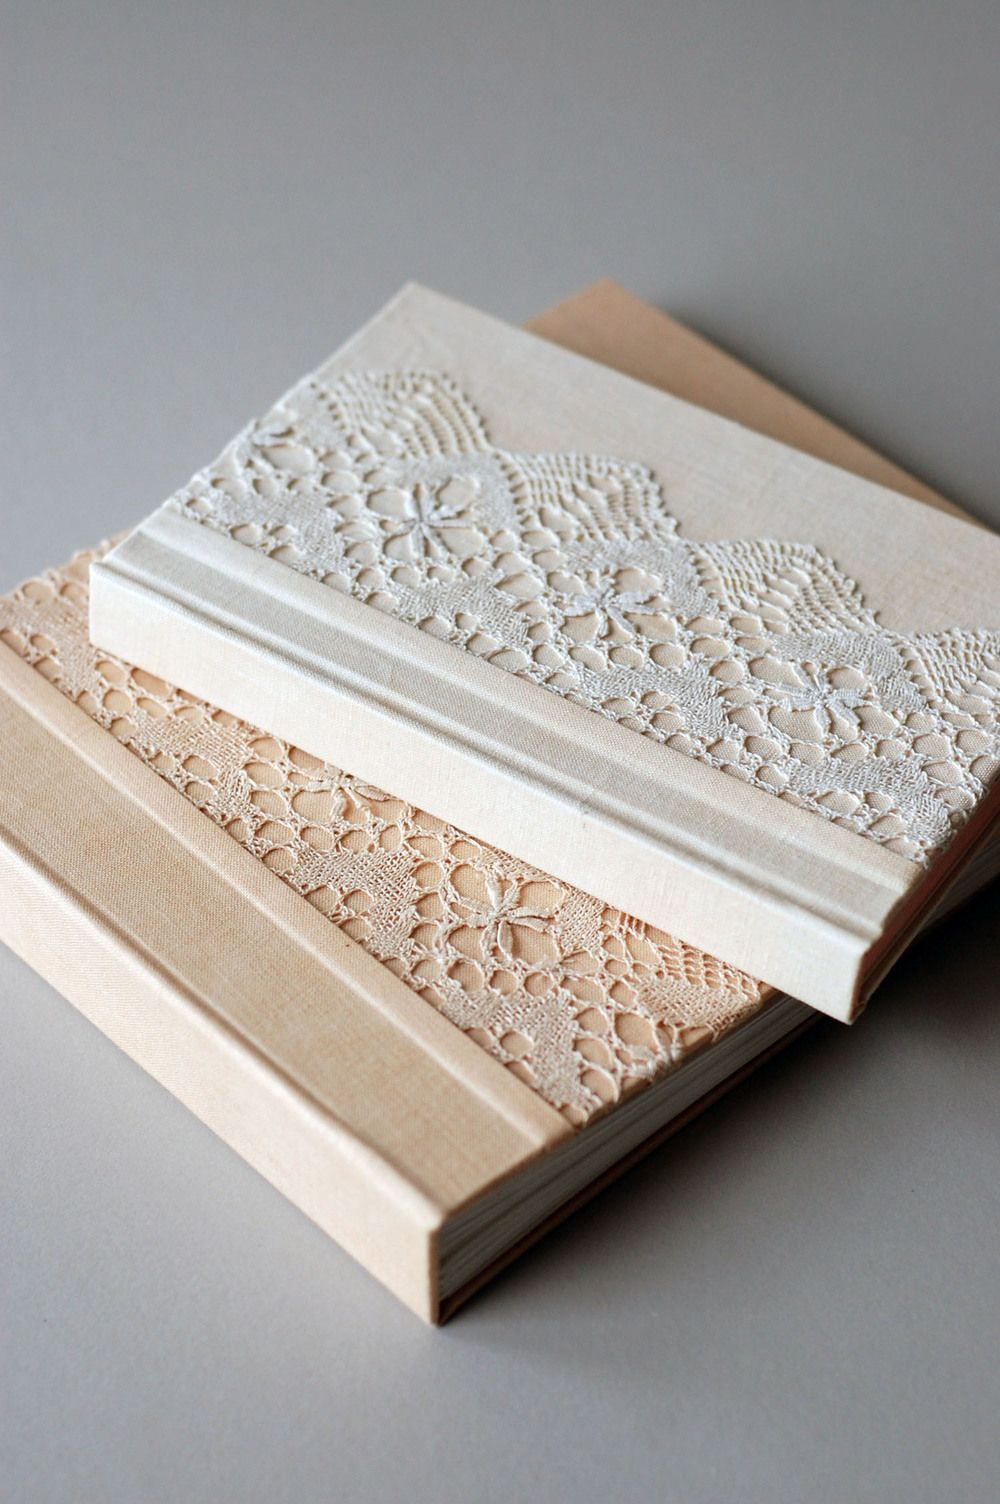 bookbinding by natalie stopka Book binding, Book making